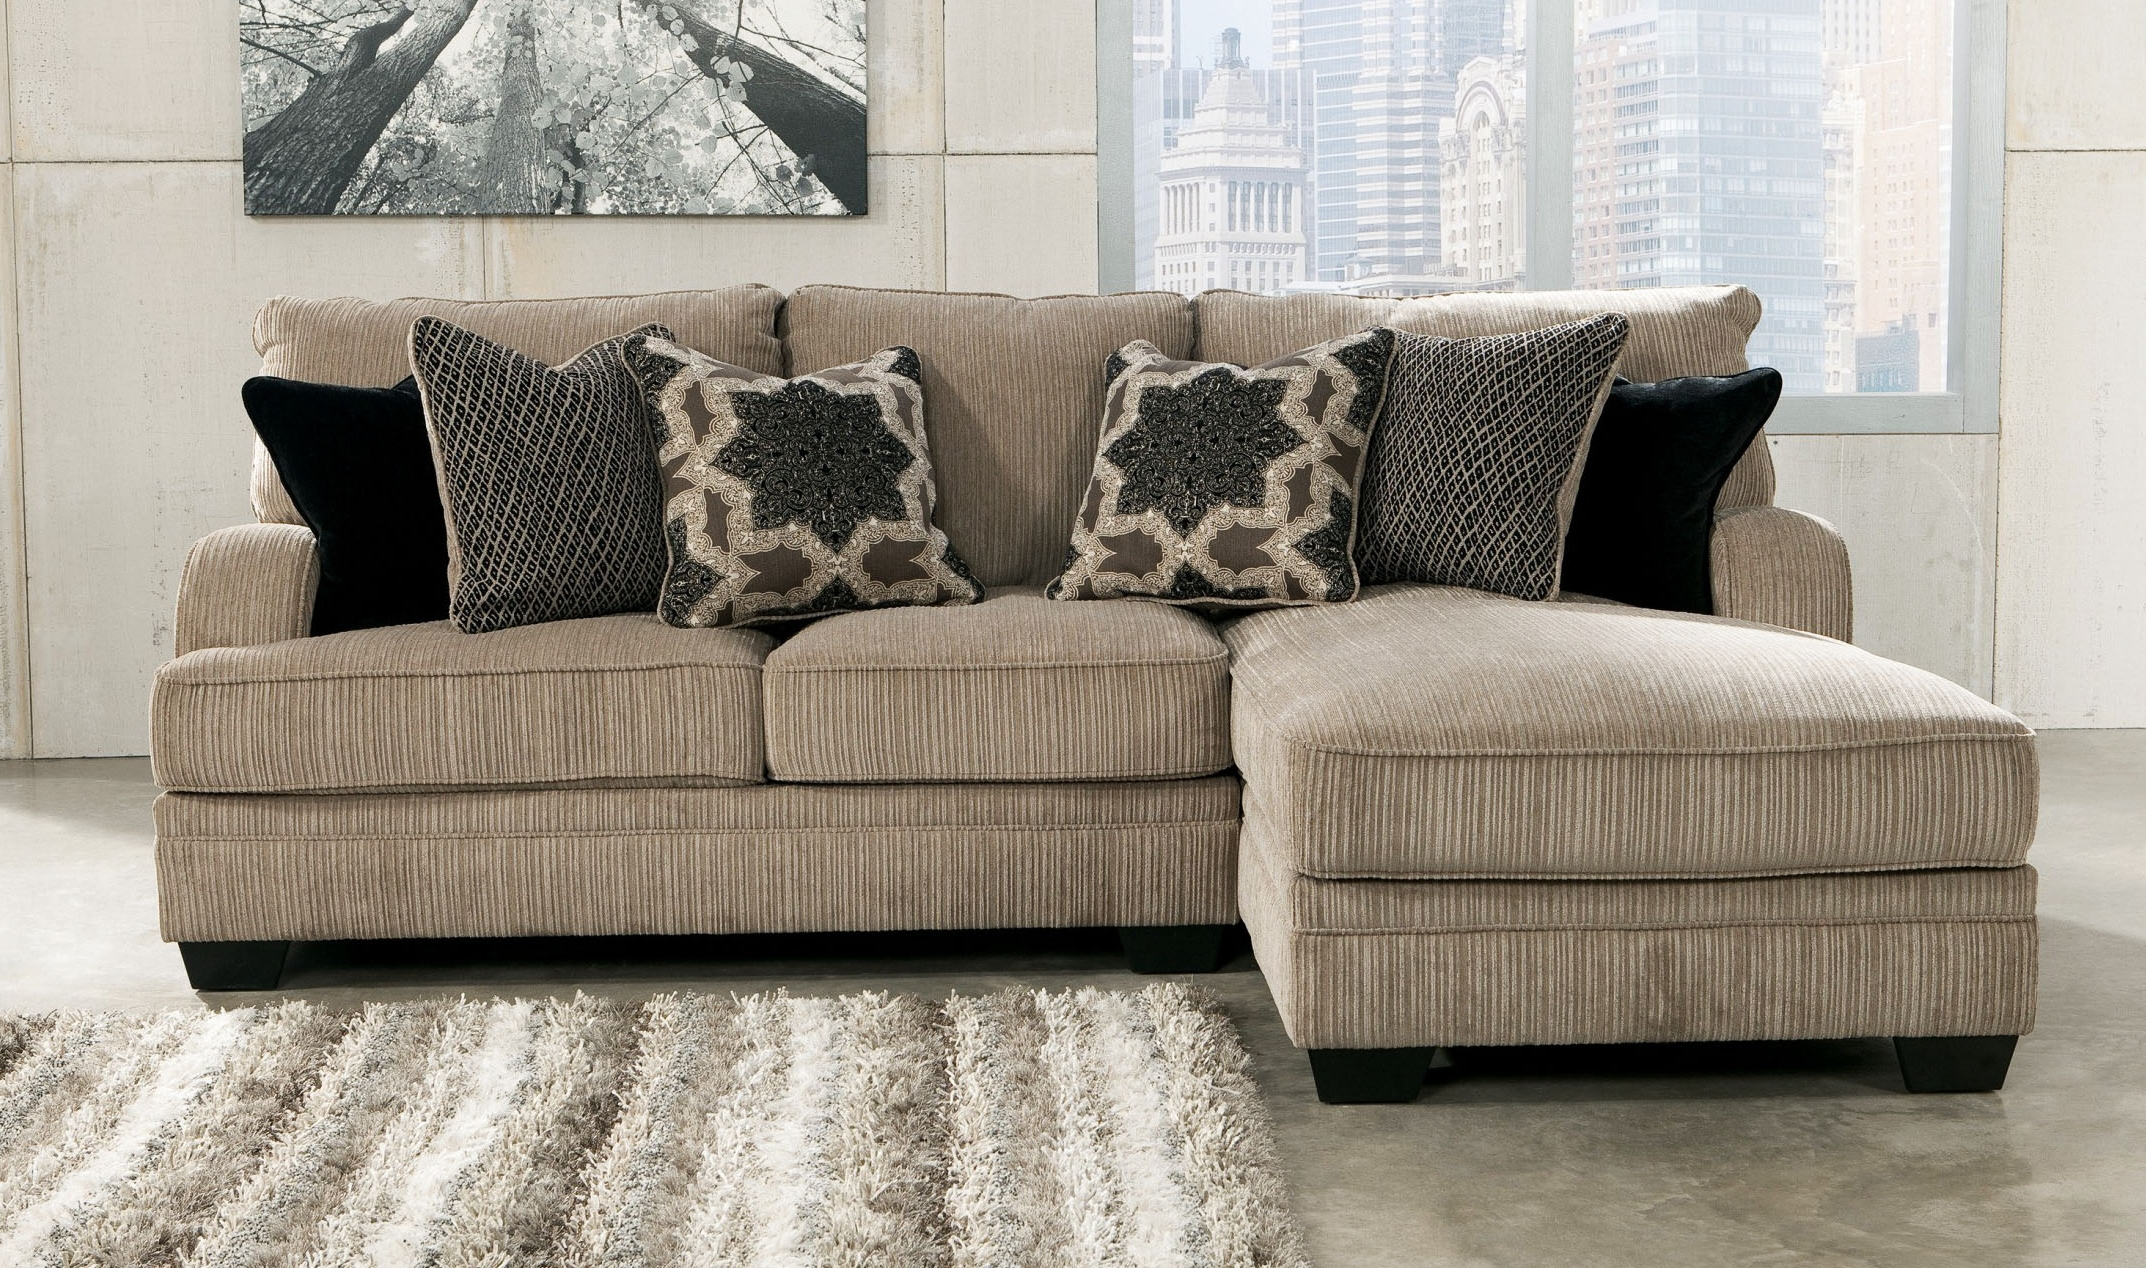 Well Liked Sectional Sofas For Small Spaces With Recliners Regarding Black Reclining Sectionals Small Sectional Sofa With Recliner (View 10 of 15)